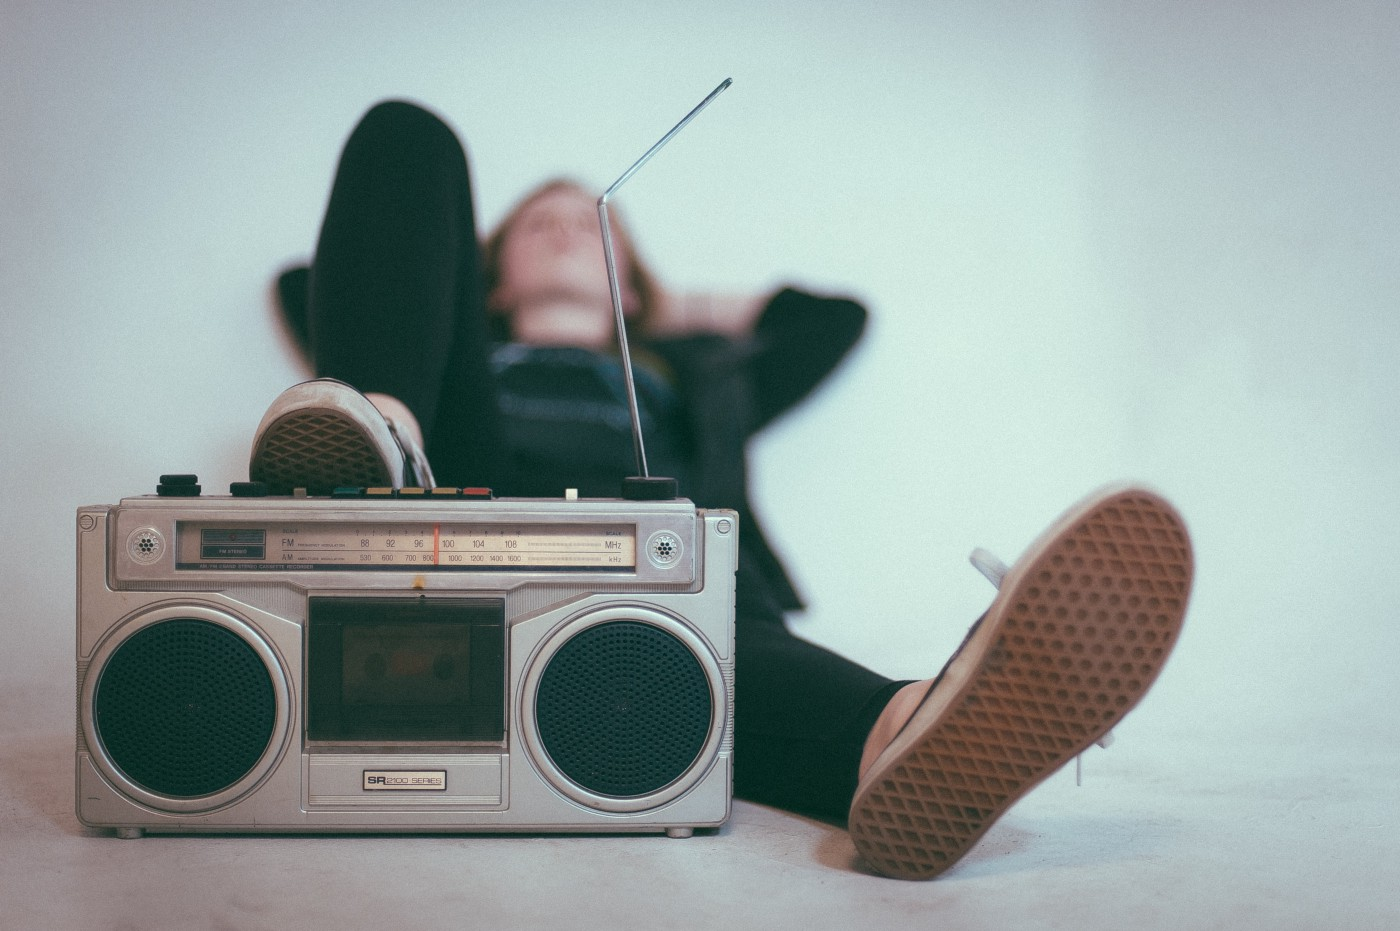 Woman listens to 1980s boombox while resting her foot on top